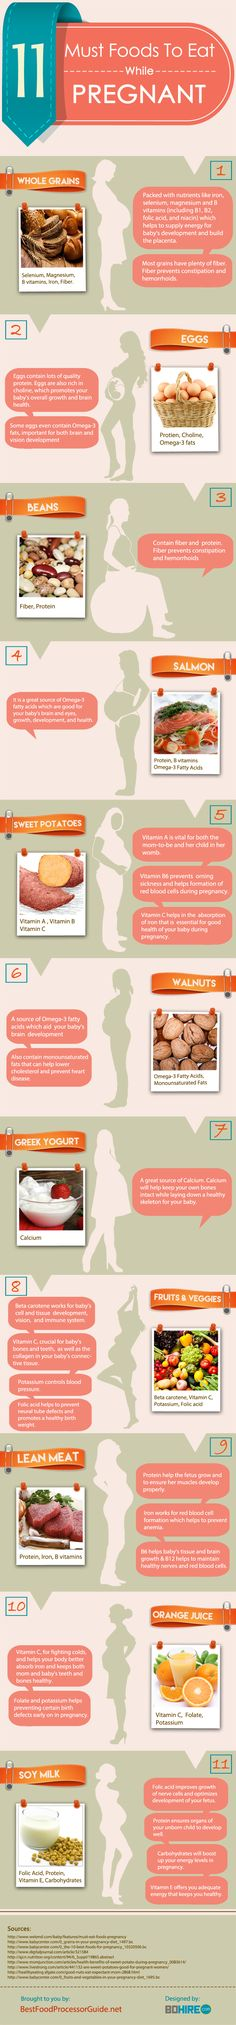 11 Must Foods To Eat While Pregnant #Infographic #PregnancyHealth